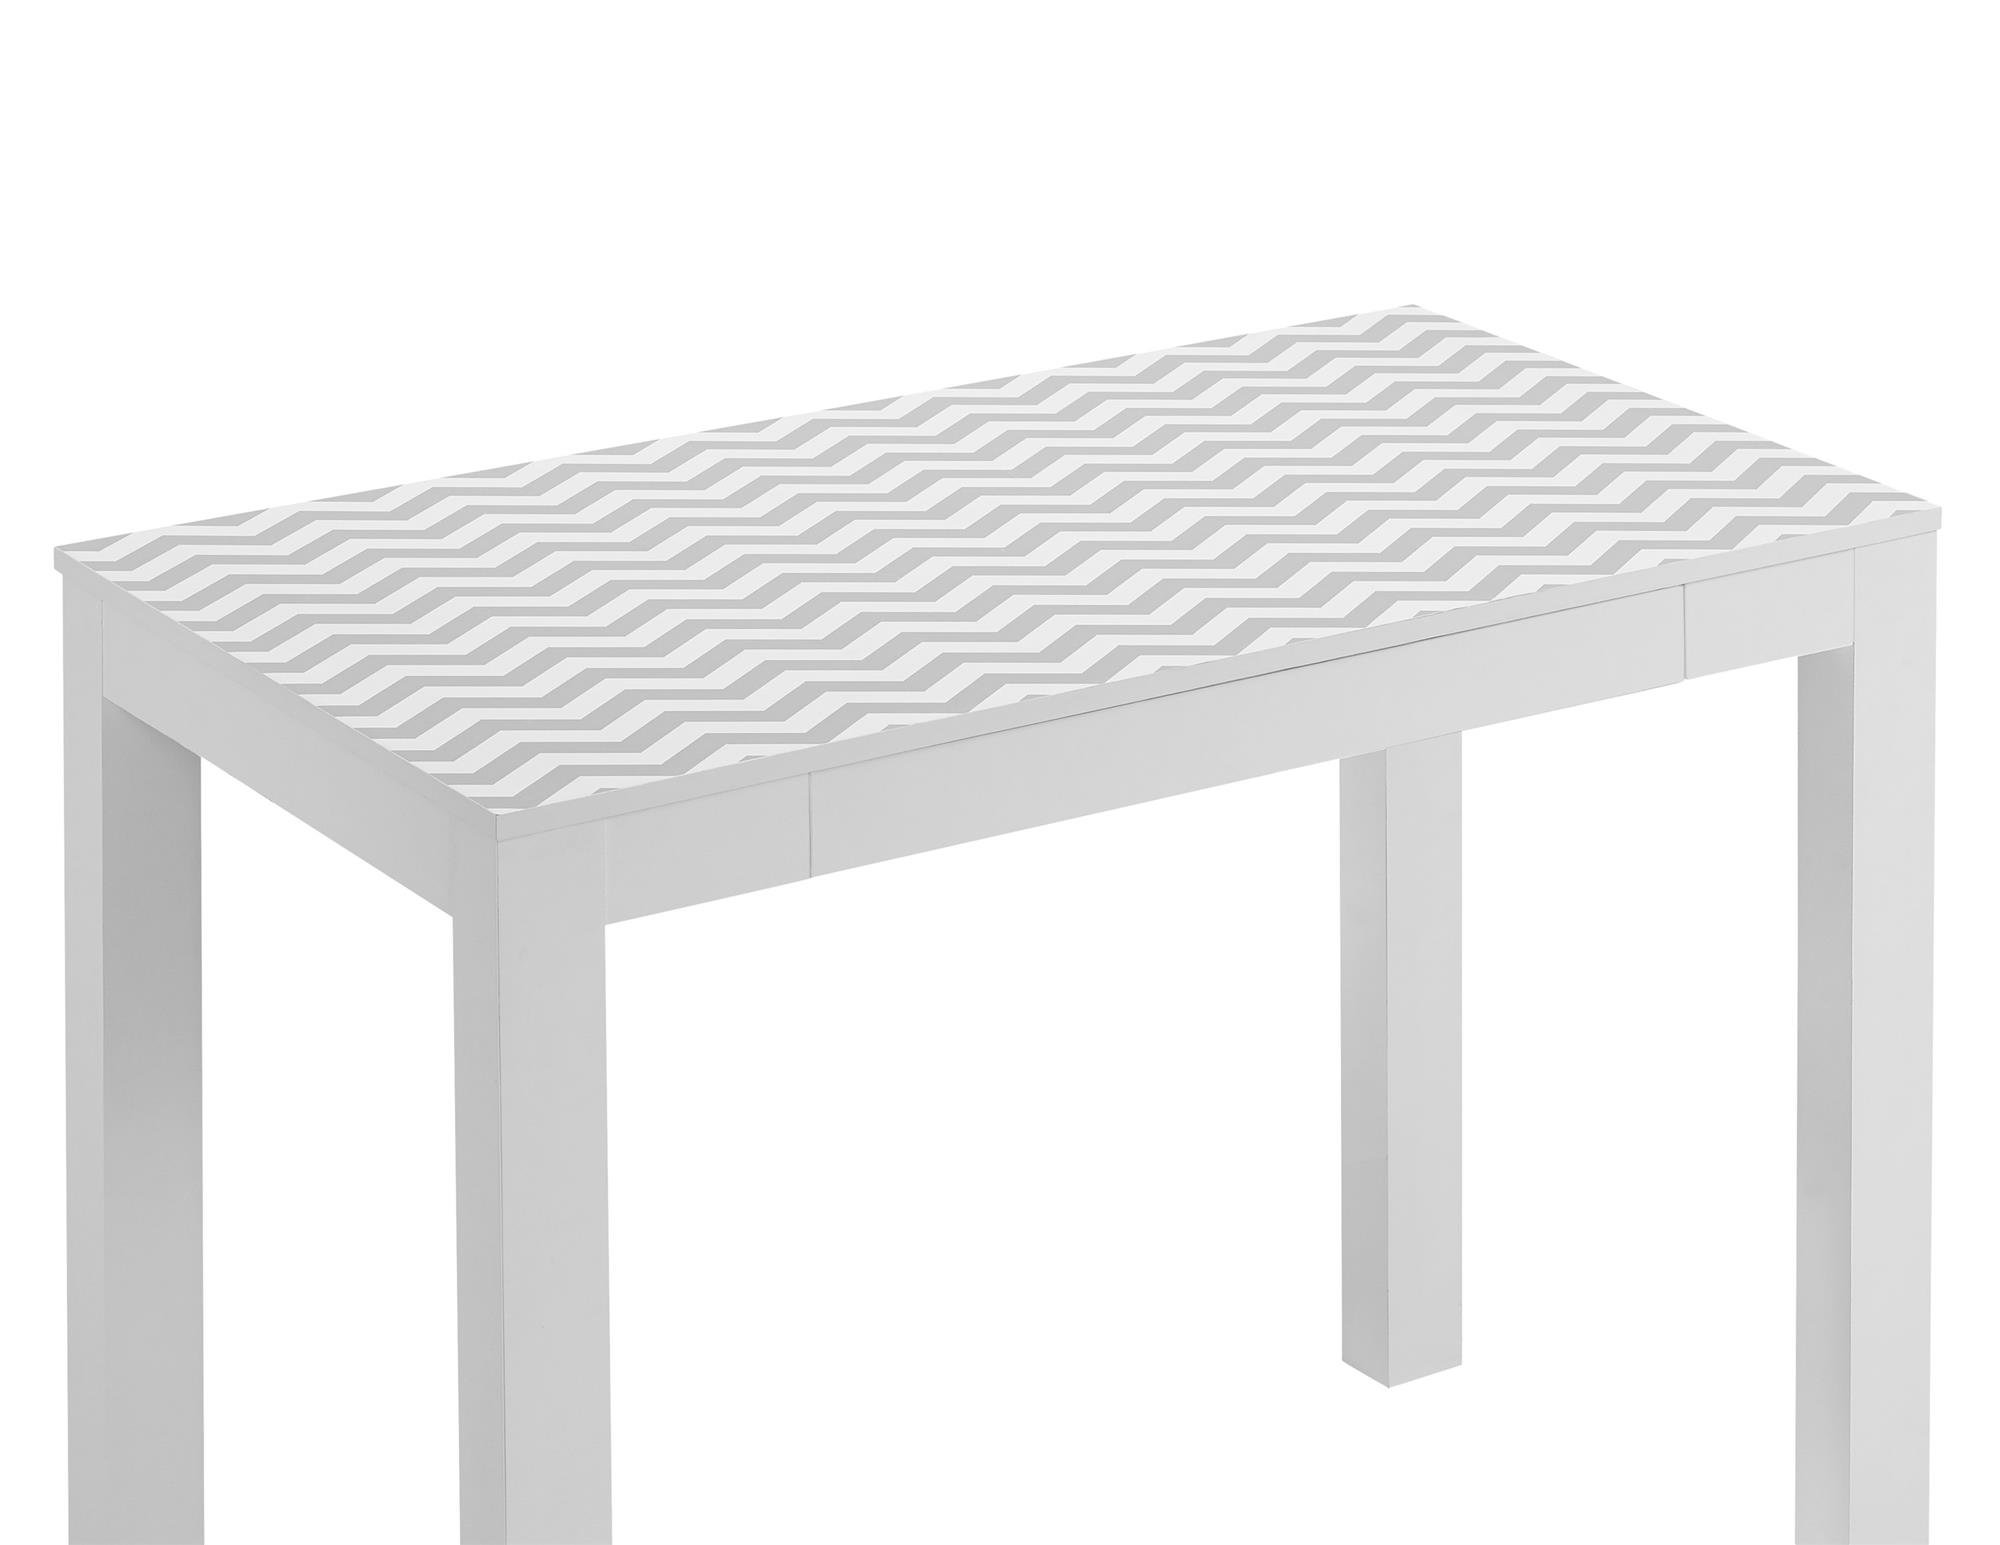 Ameriwood Home Parsons Desk Drawer, White/Gray Chevron by Ameriwood Home (Image #6)